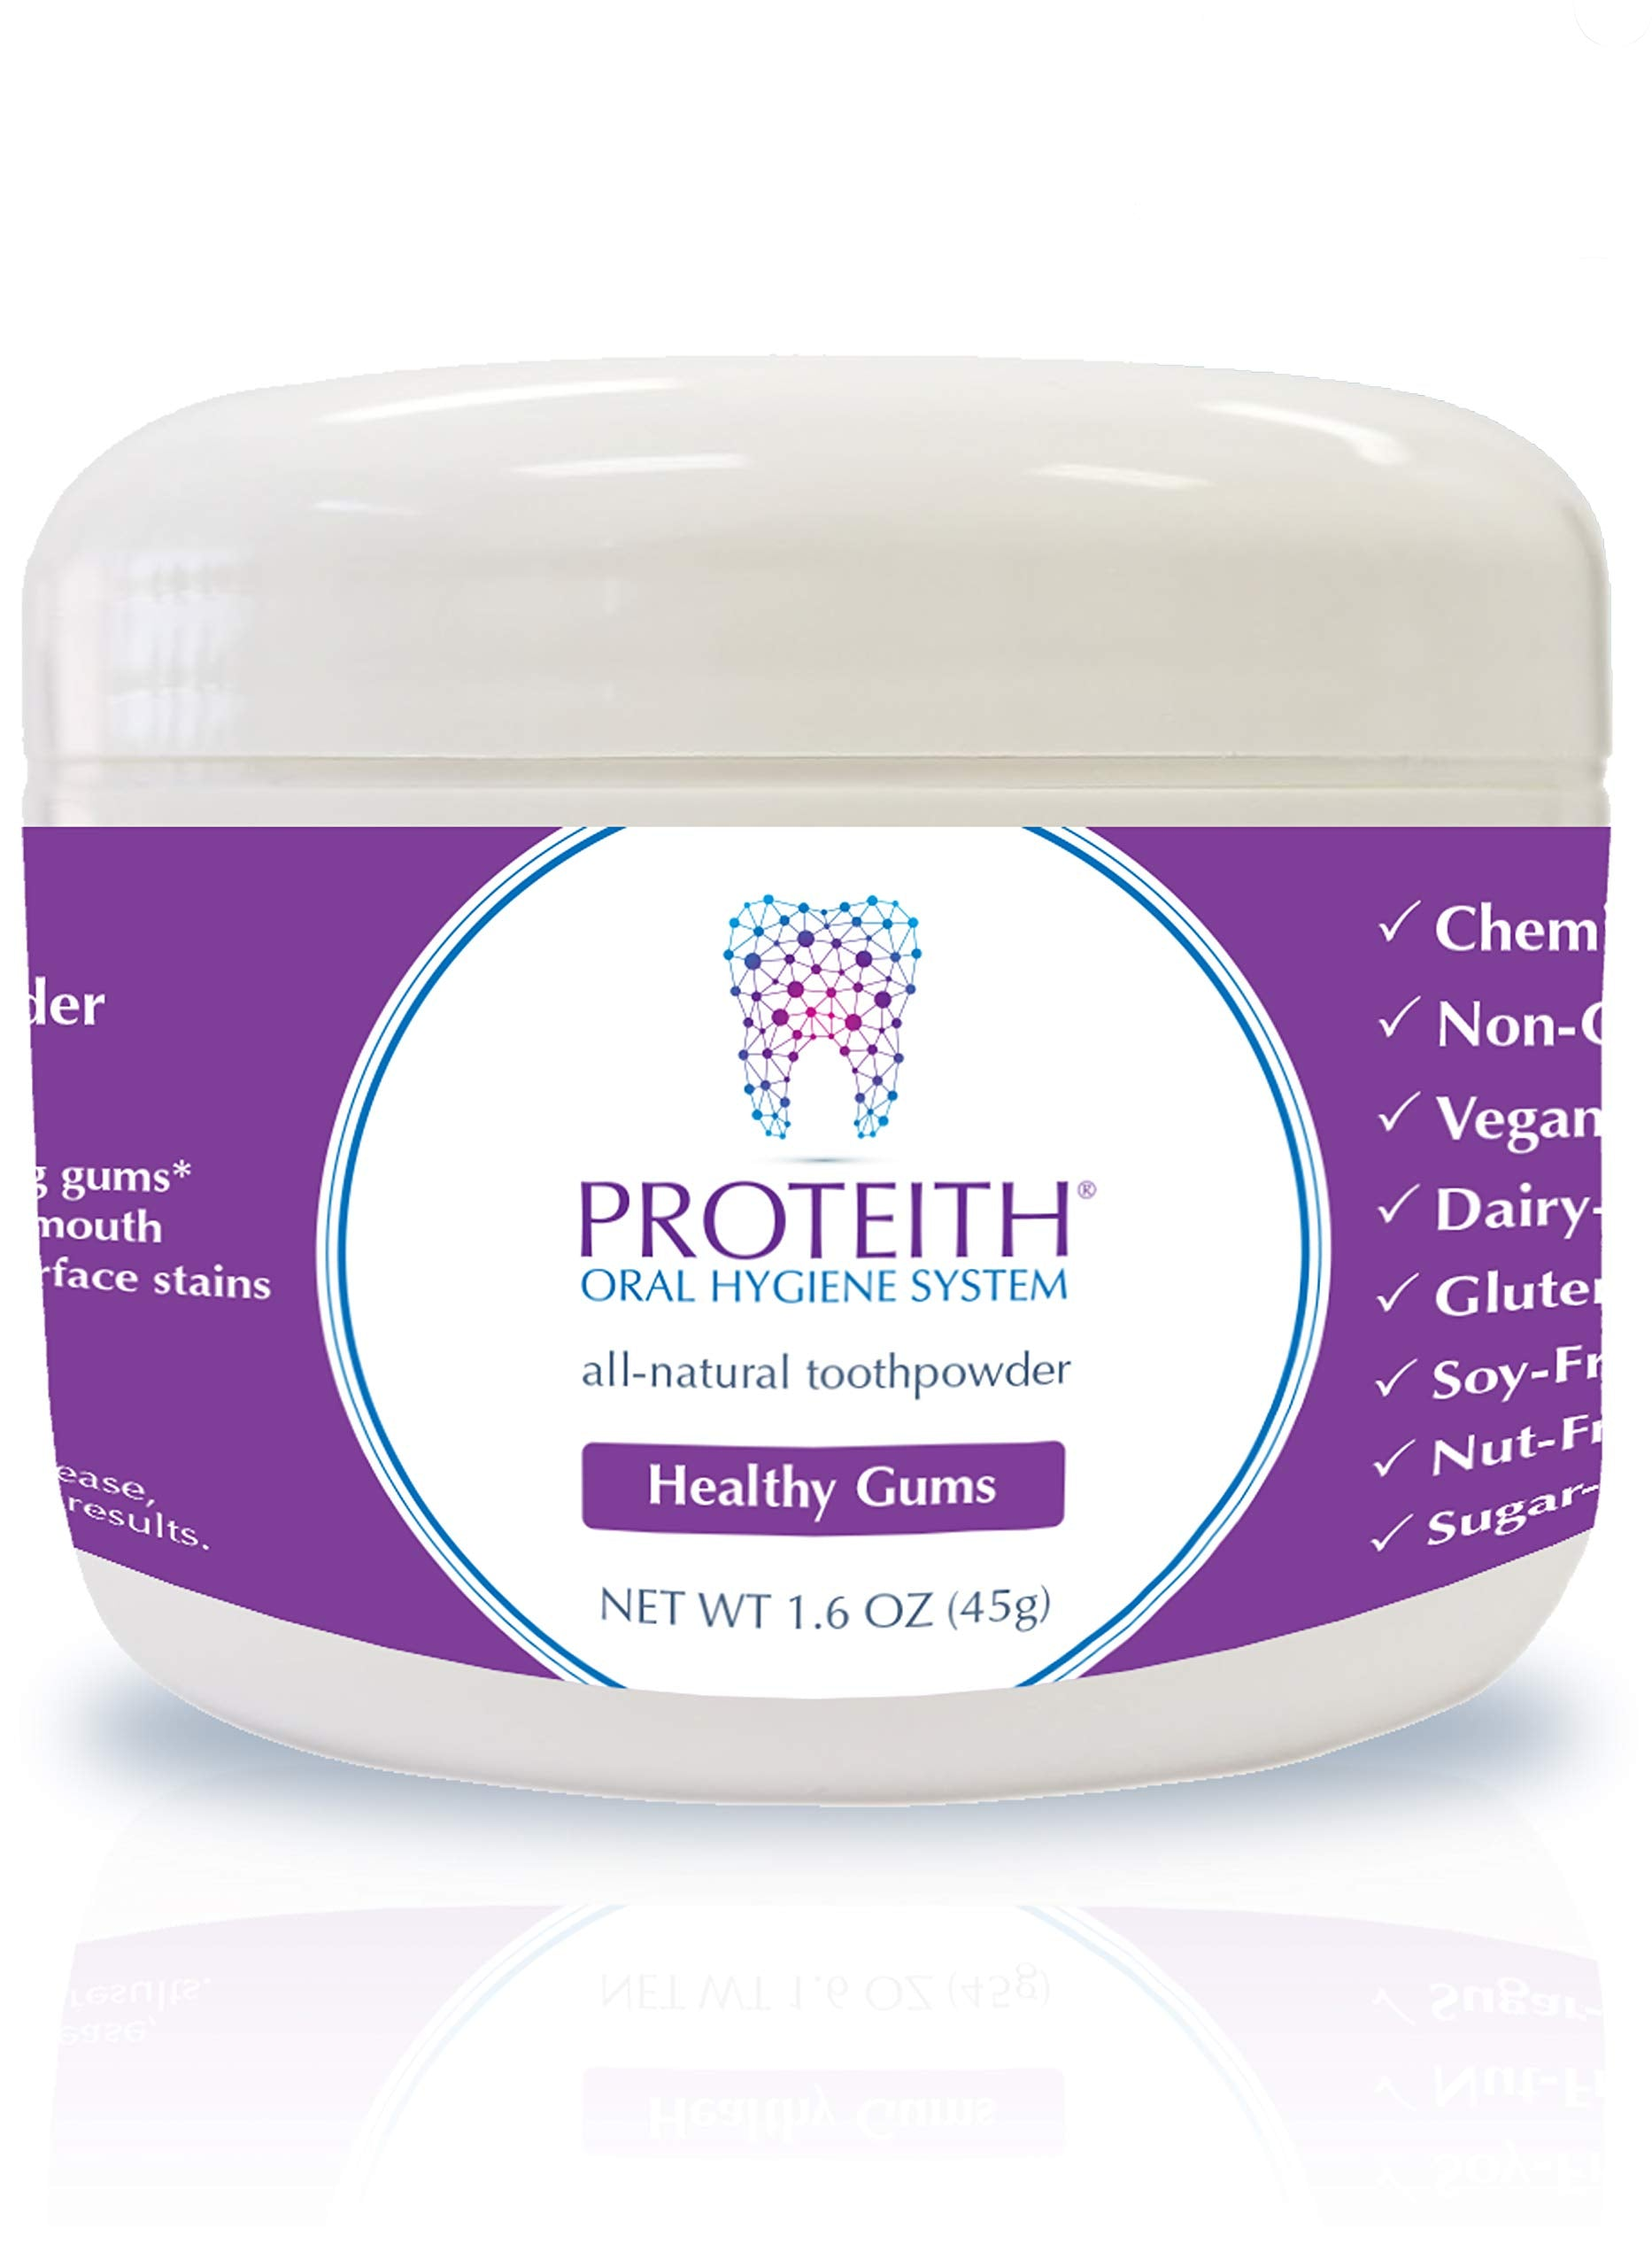 PROTEITH Oral Hygiene System for Healthy Gums - All-Natural Toothpowder - 1.6oz